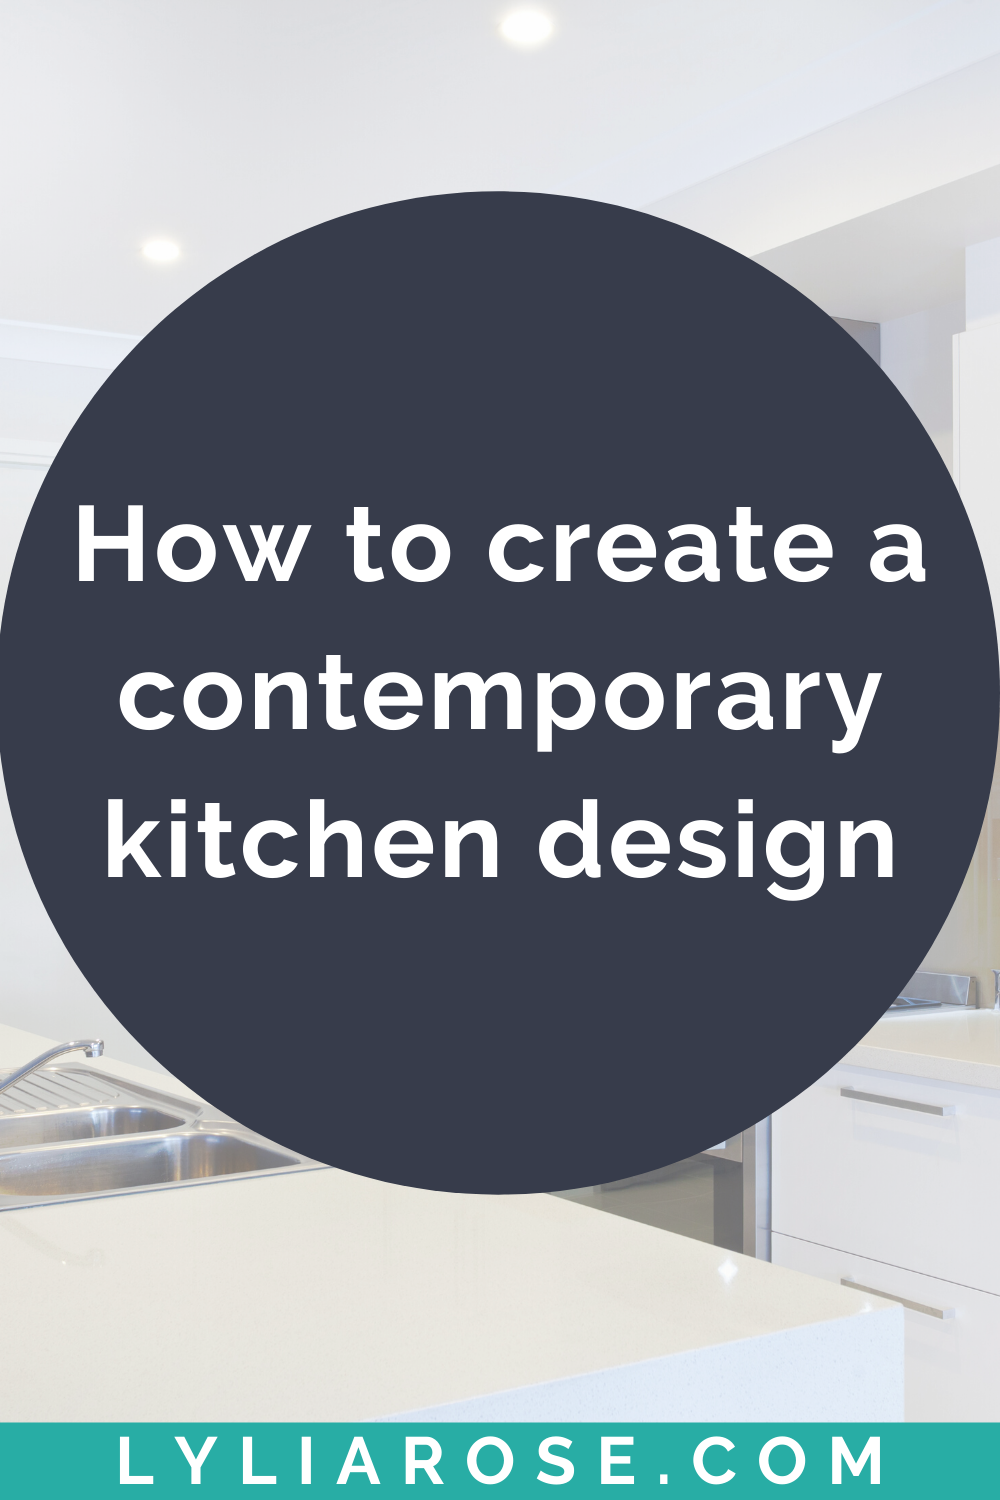 How to create a contemporary kitchen design